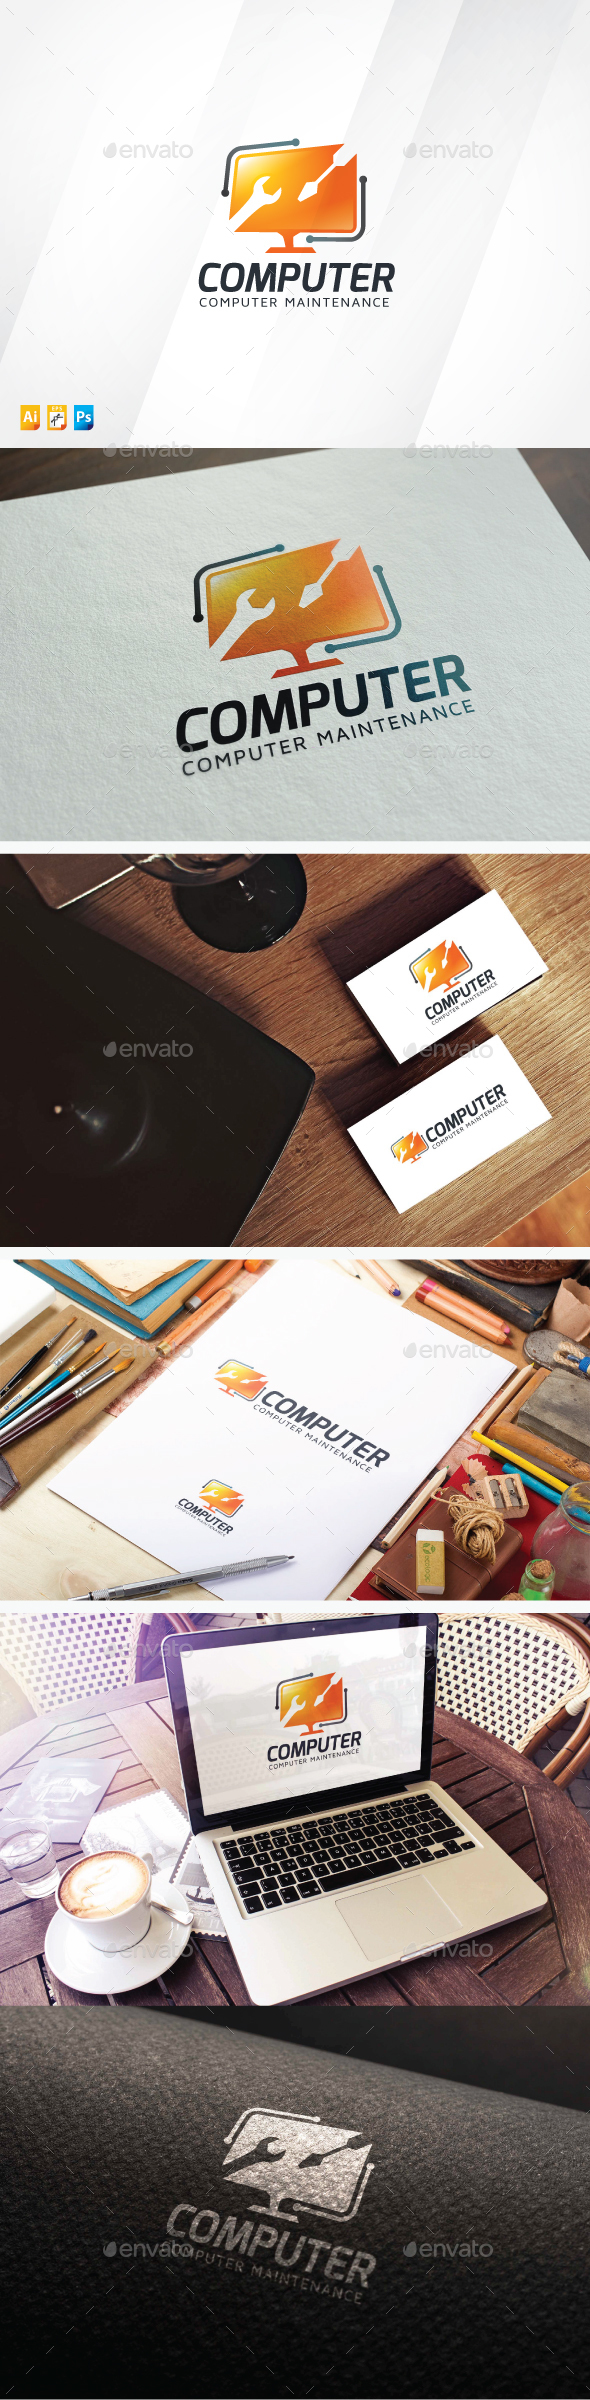 Computer Maintenance Logo - Objects Logo Templates